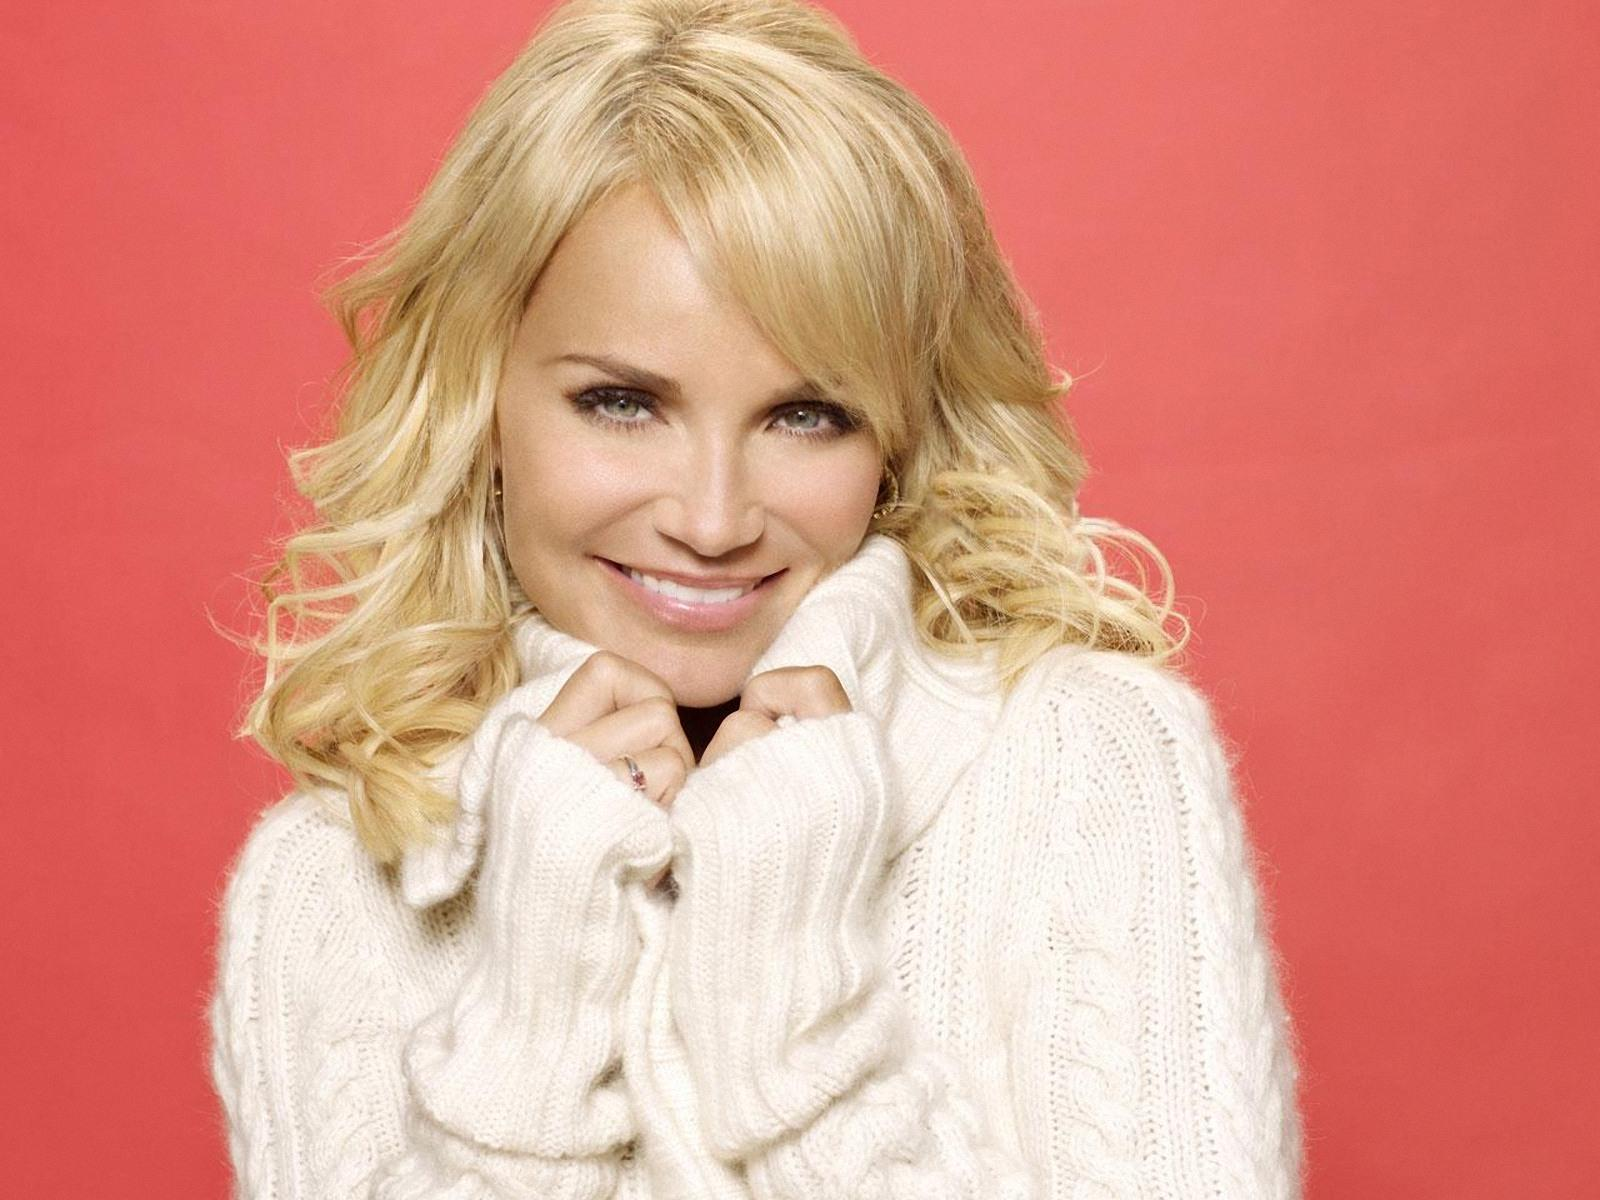 kristin chenoweth photos wallpaper 65622